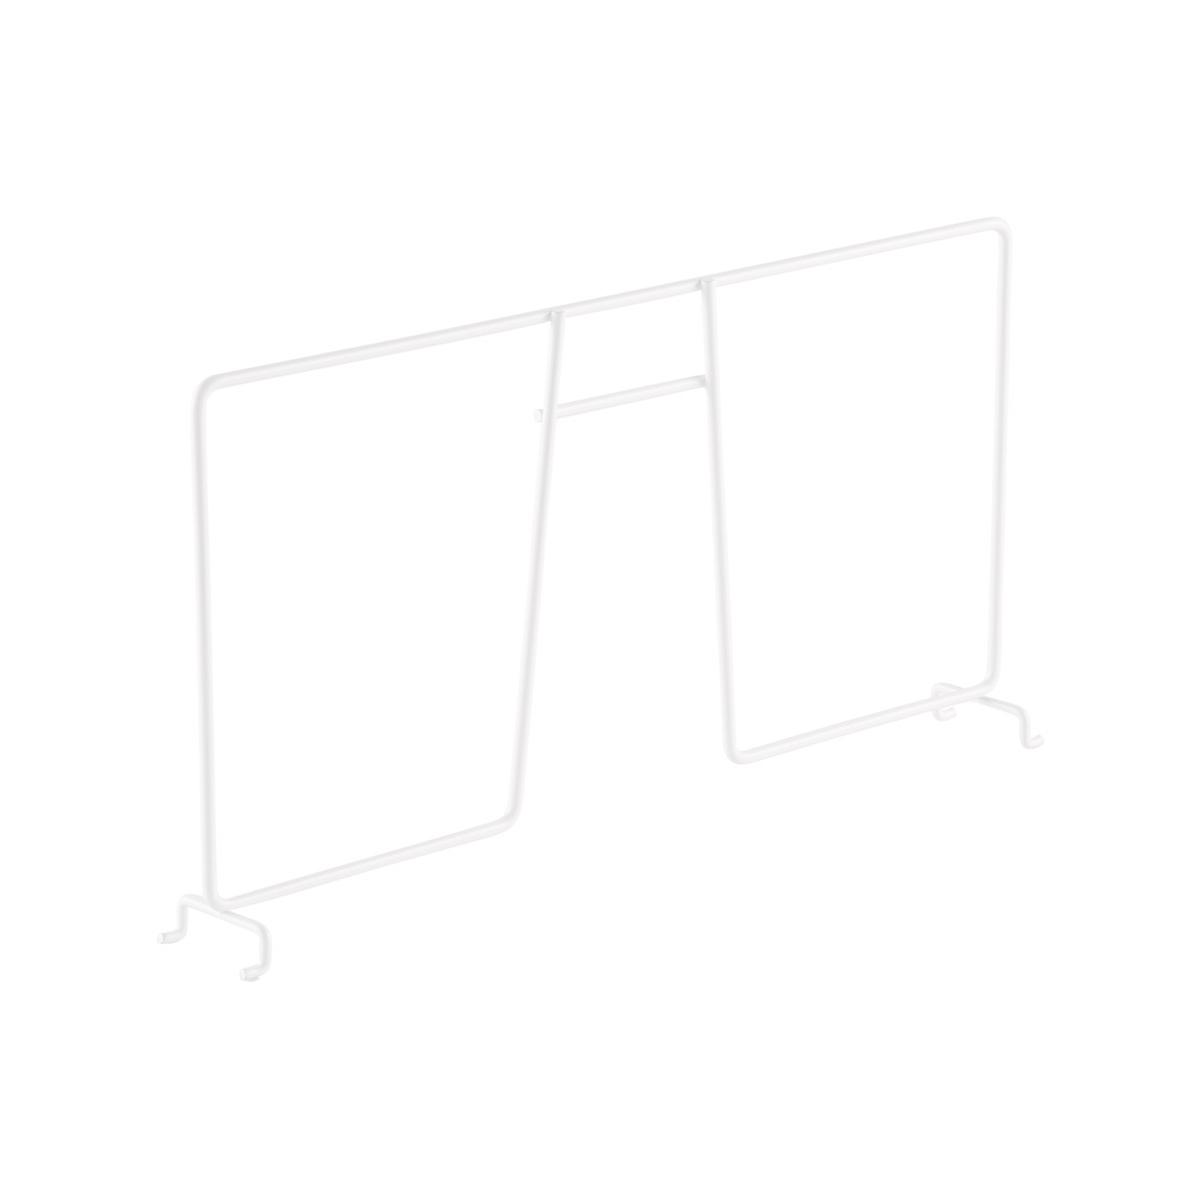 White elfa Ventilated Wire Shelf Dividers   The Container Store